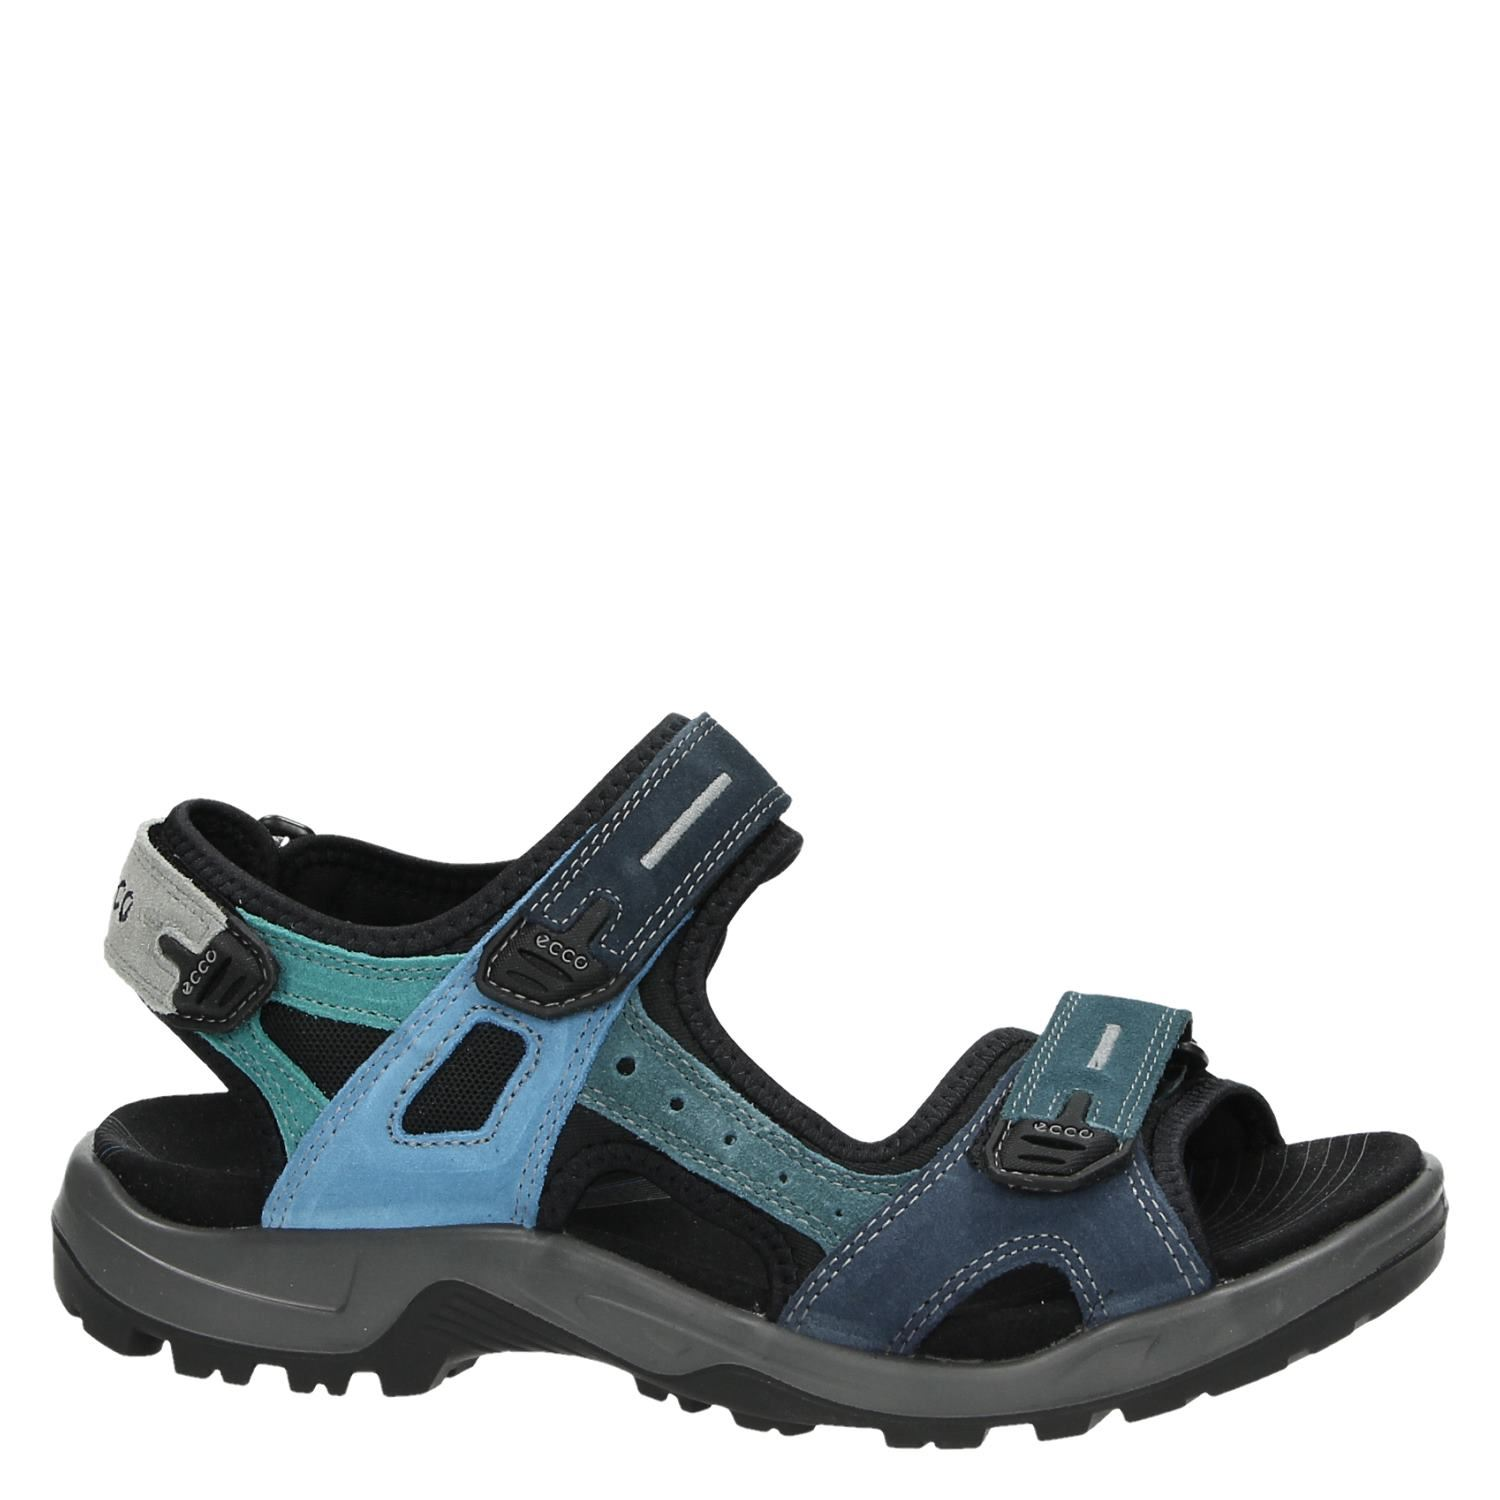 Sandales Offroad Ecco Bleu MihneY9